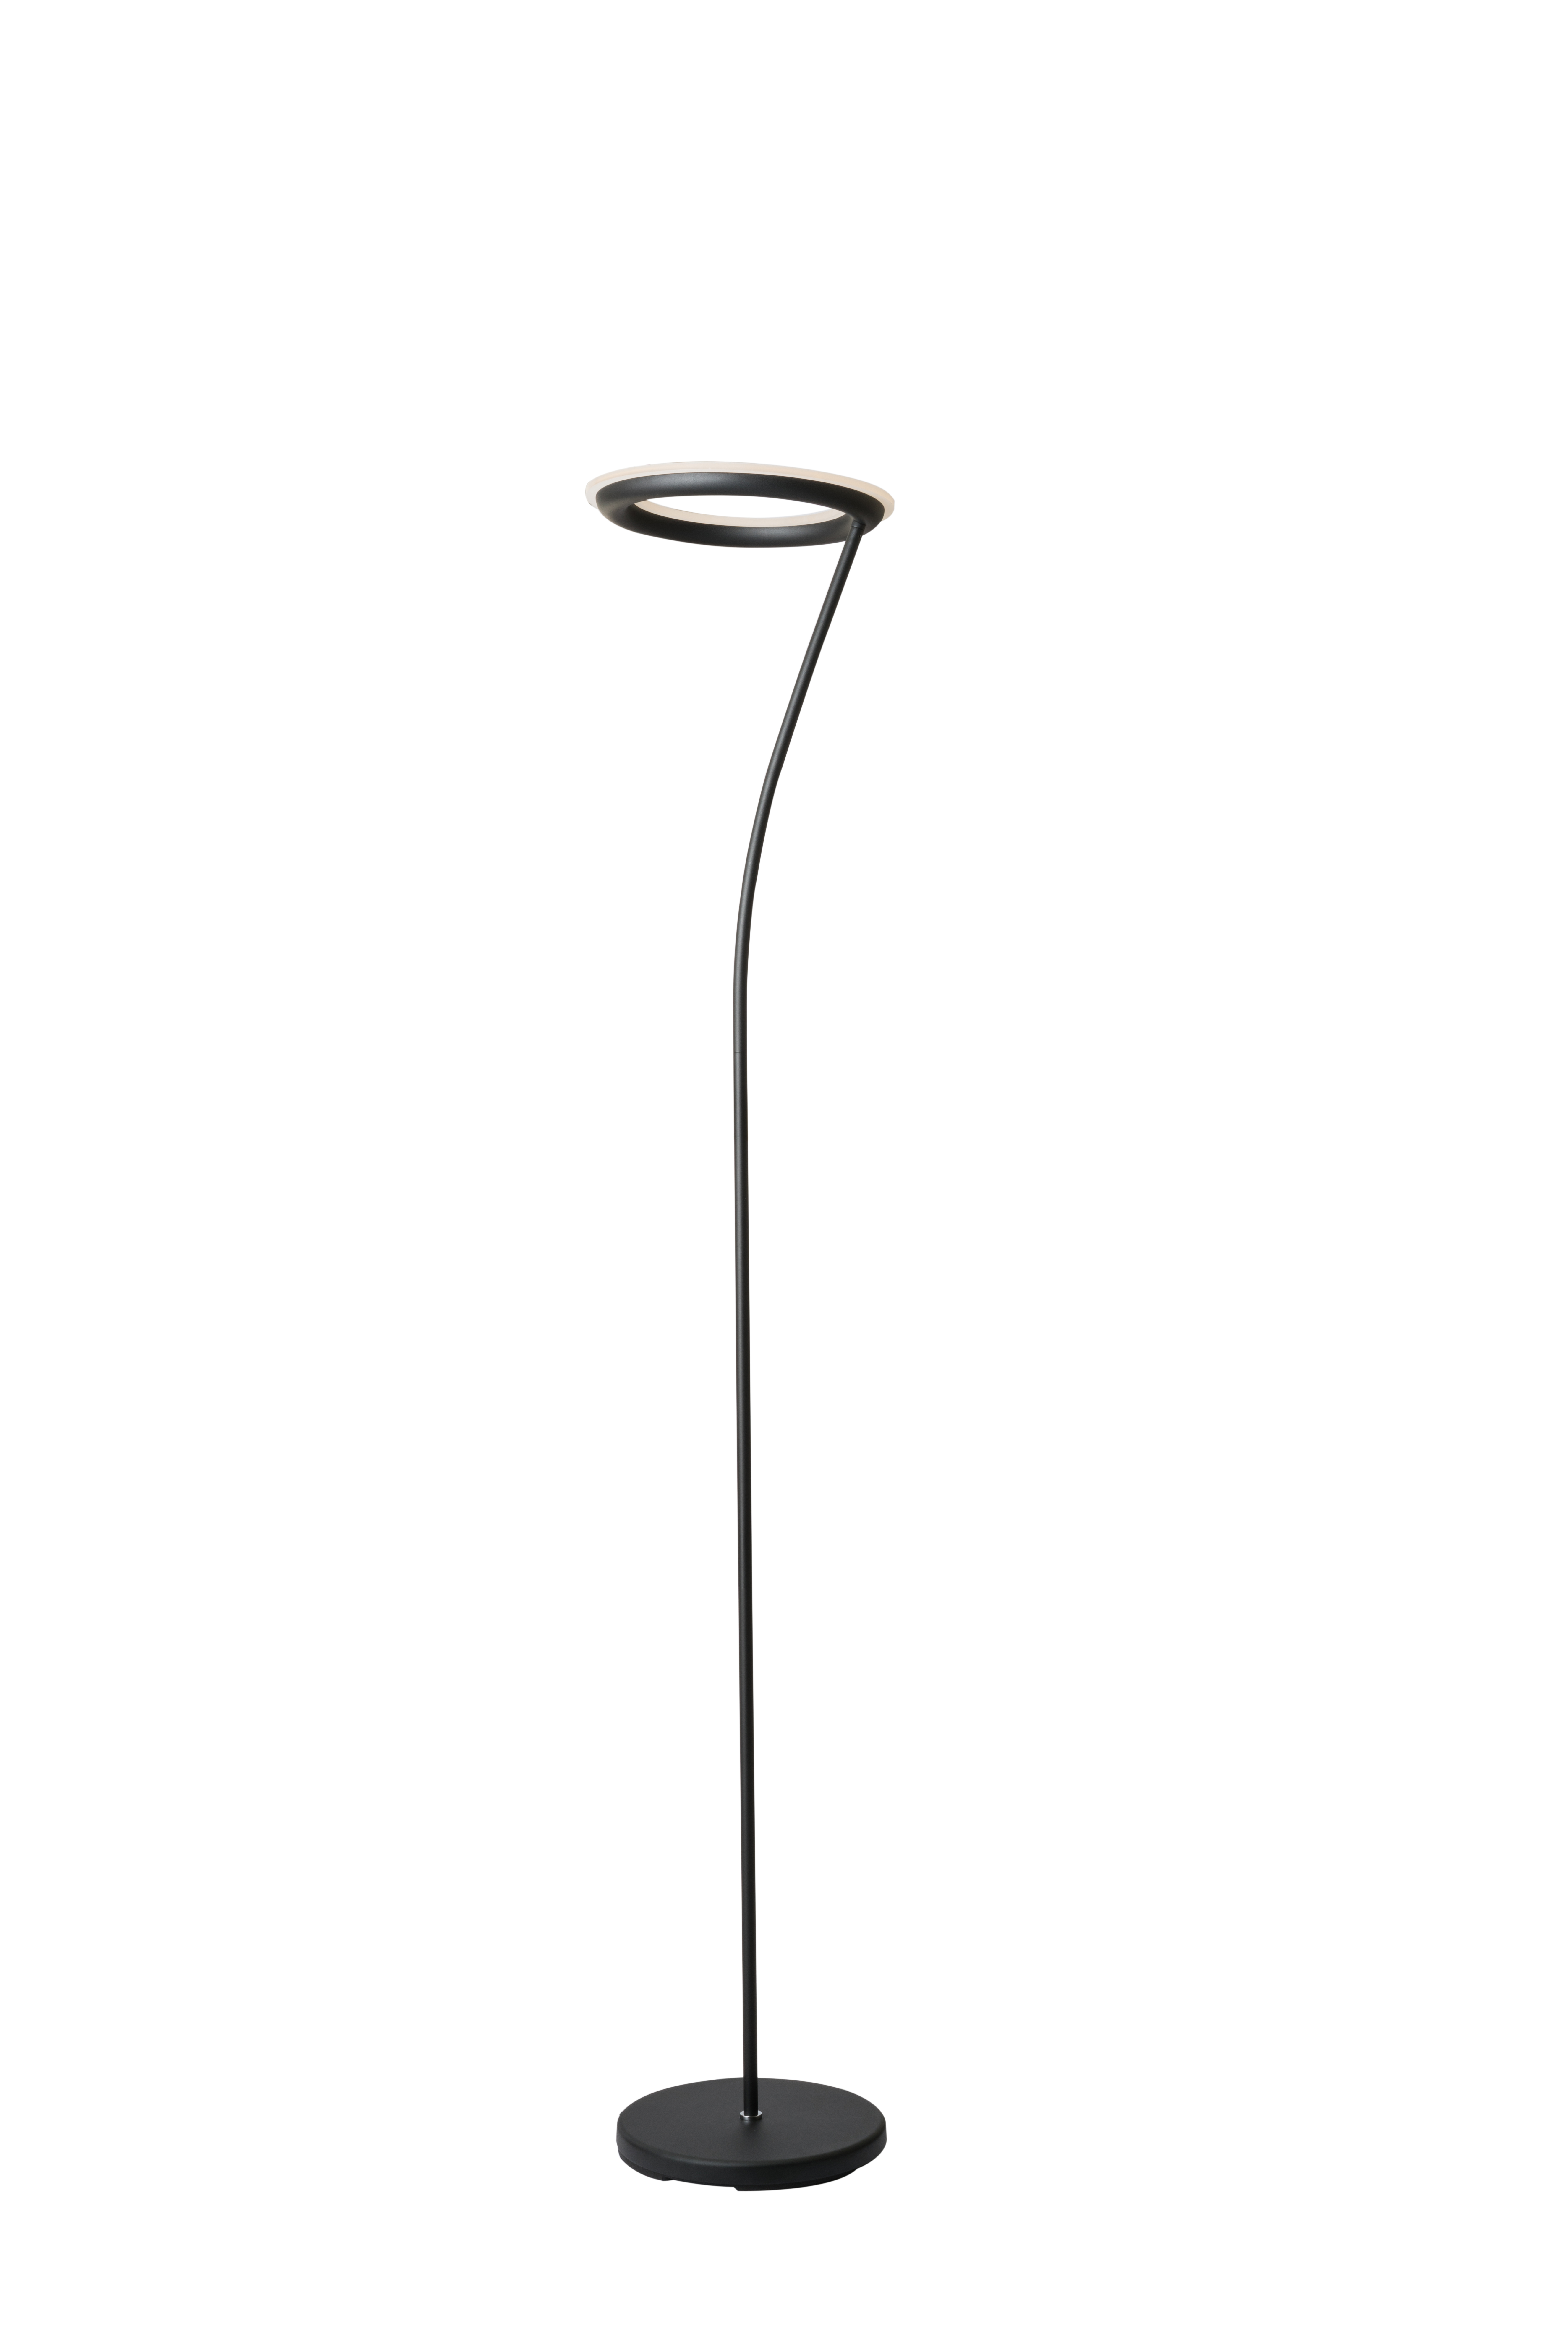 Image Is Loading 73 034 Tall Metal Torchiere Floor Led Lamp